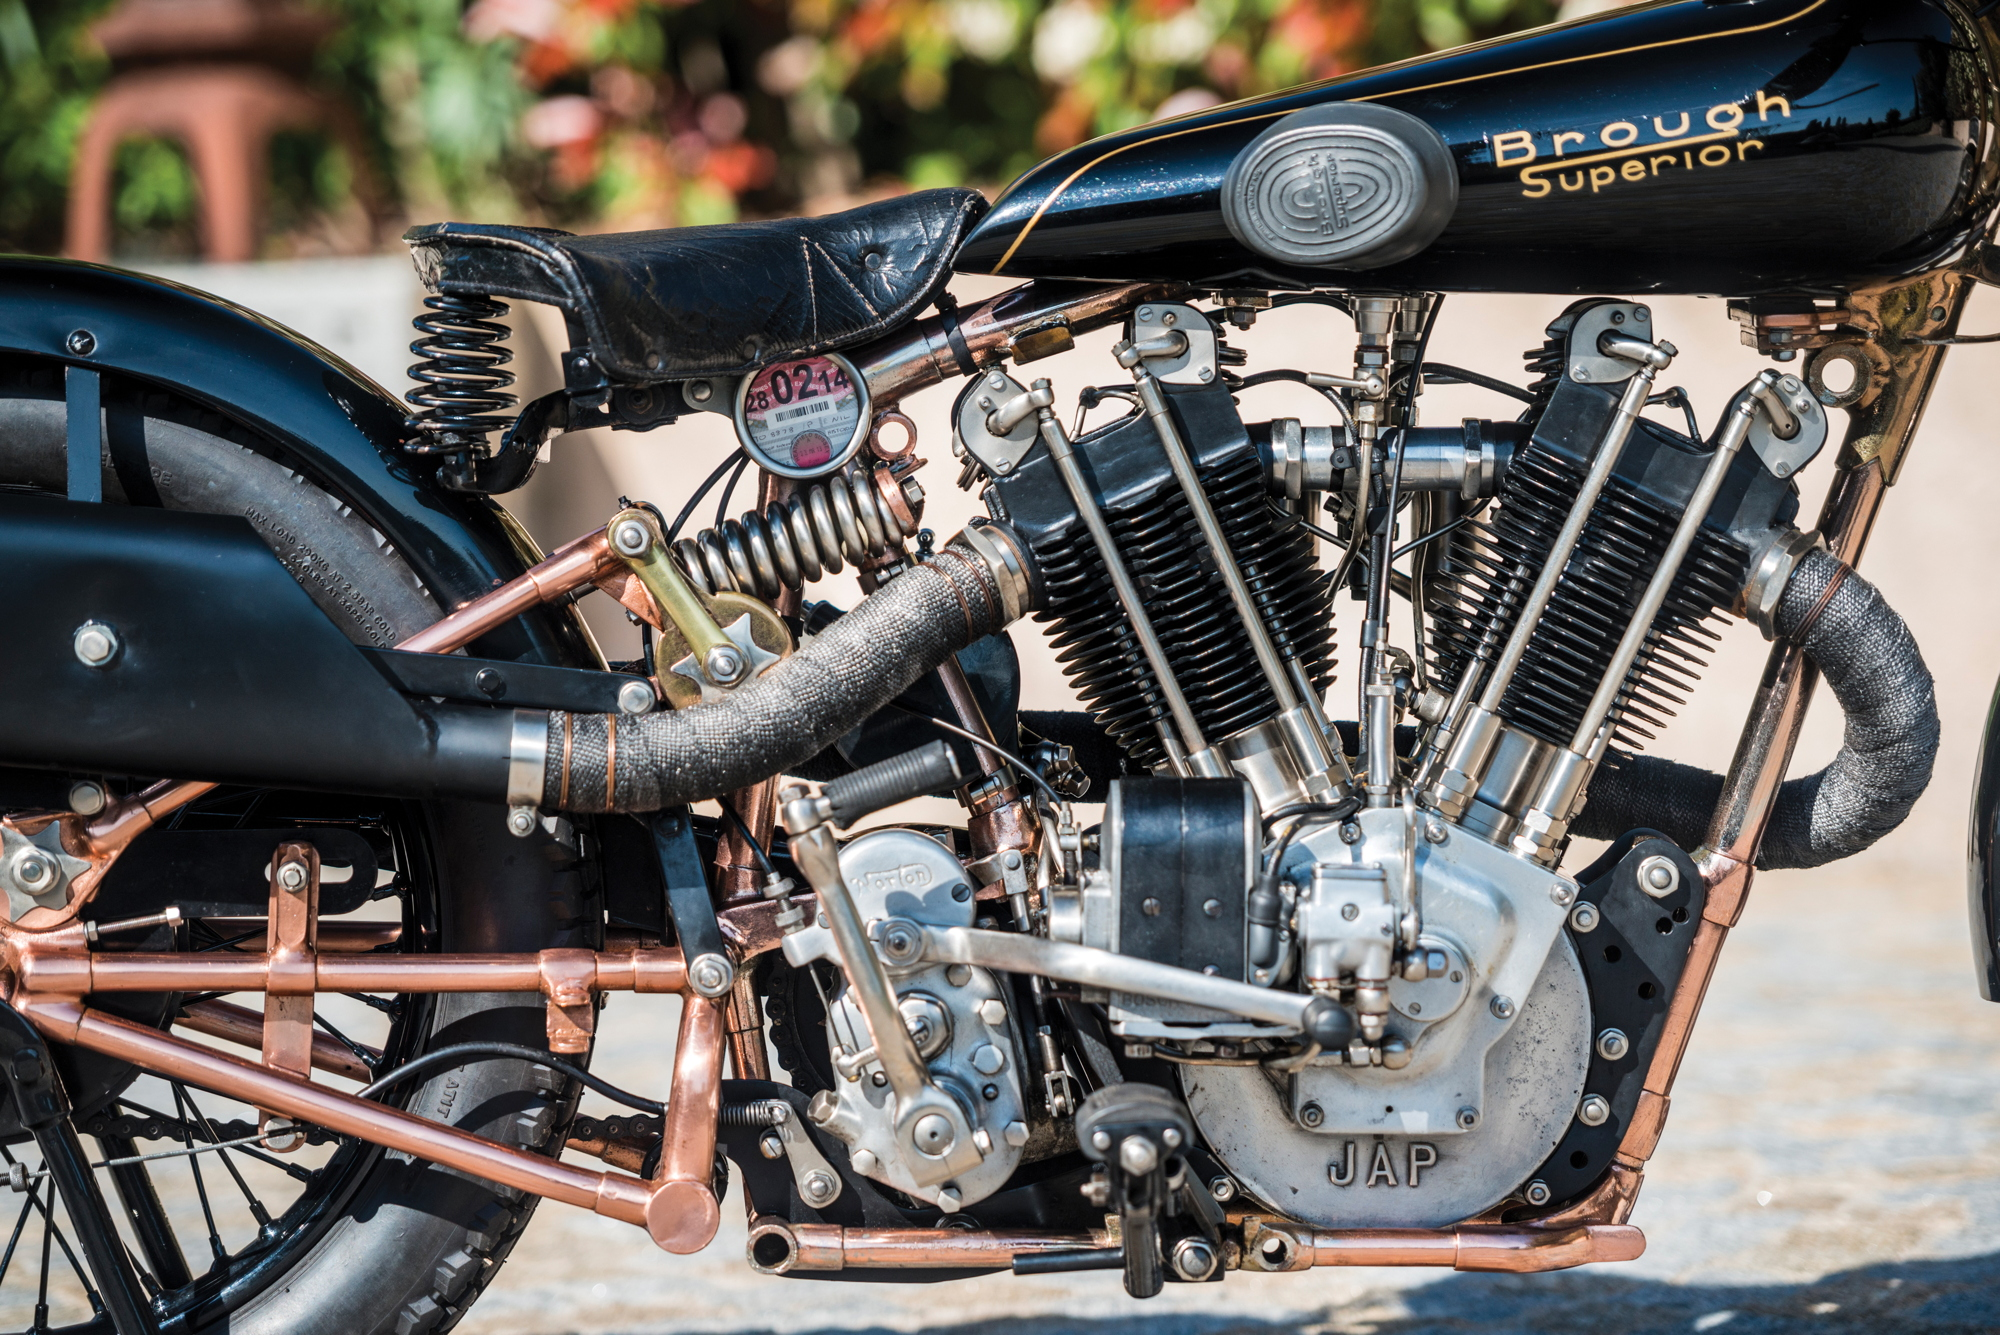 Brough Superior SS100 Moby Dick engine 2017 Villa Erba